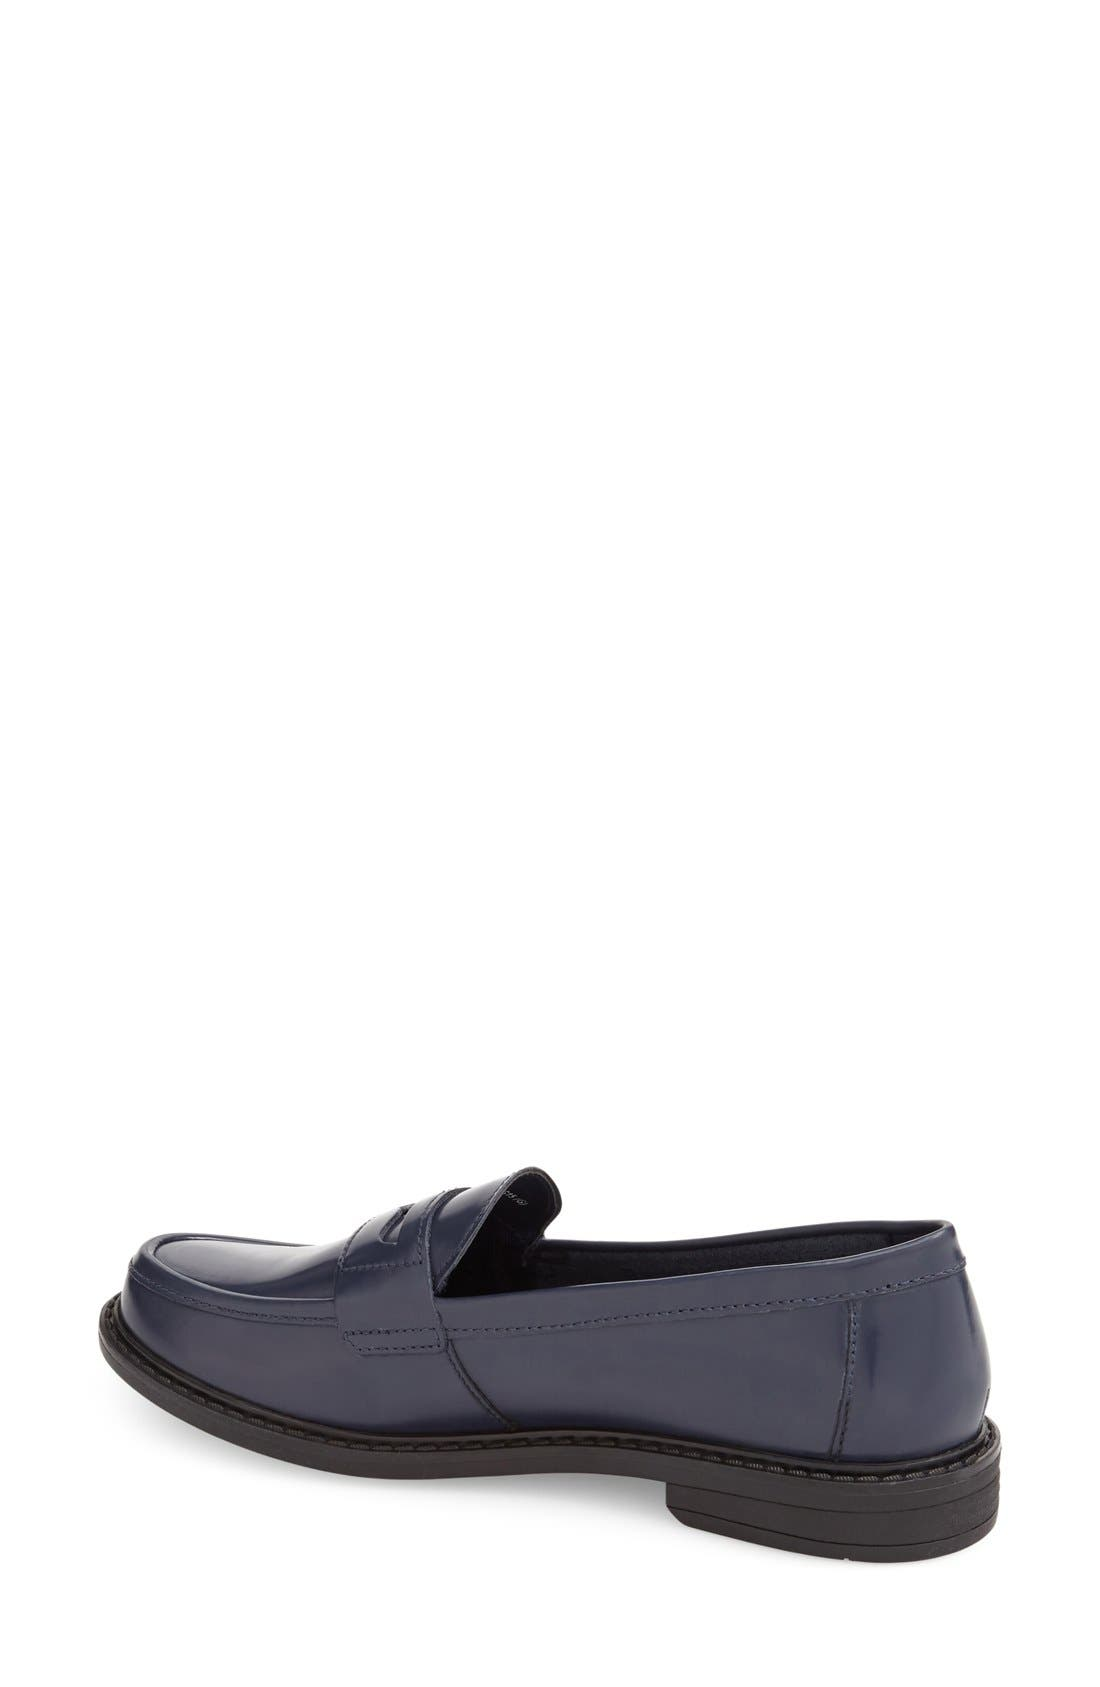 Alternate Image 2  - Cole Haan 'Pinch Campus' Penny Loafer (Women)